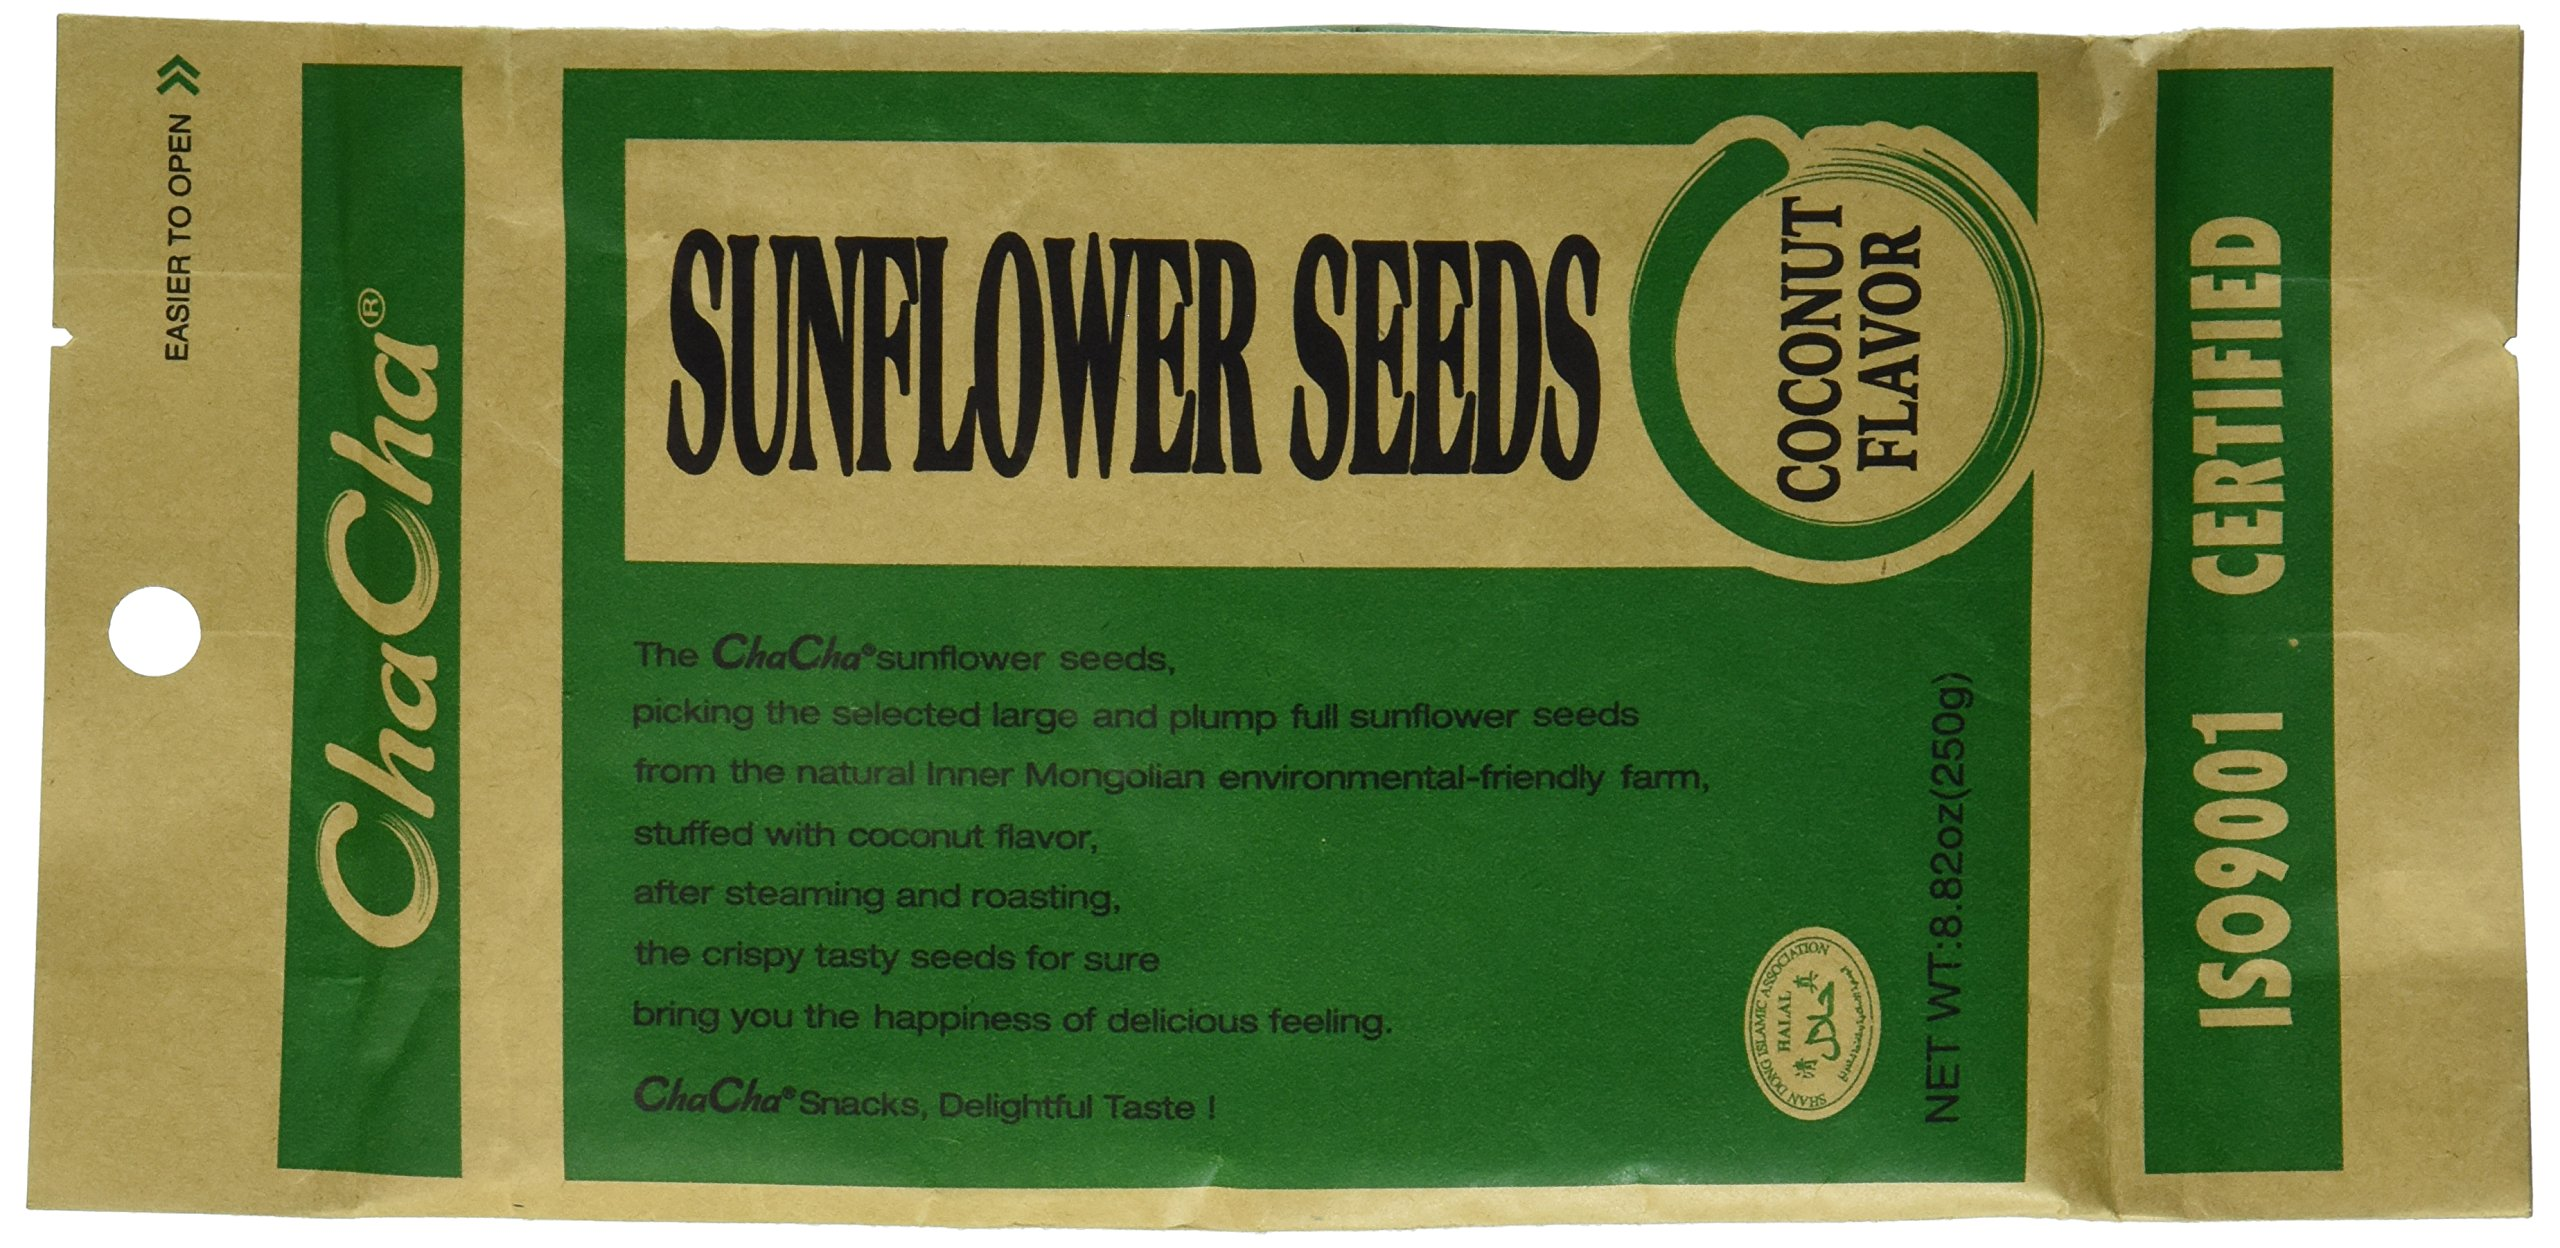 Chacha Sunflower Roasted and Salted Seeds (Coconut Flavor) 250g X 6 Bags by NineChef